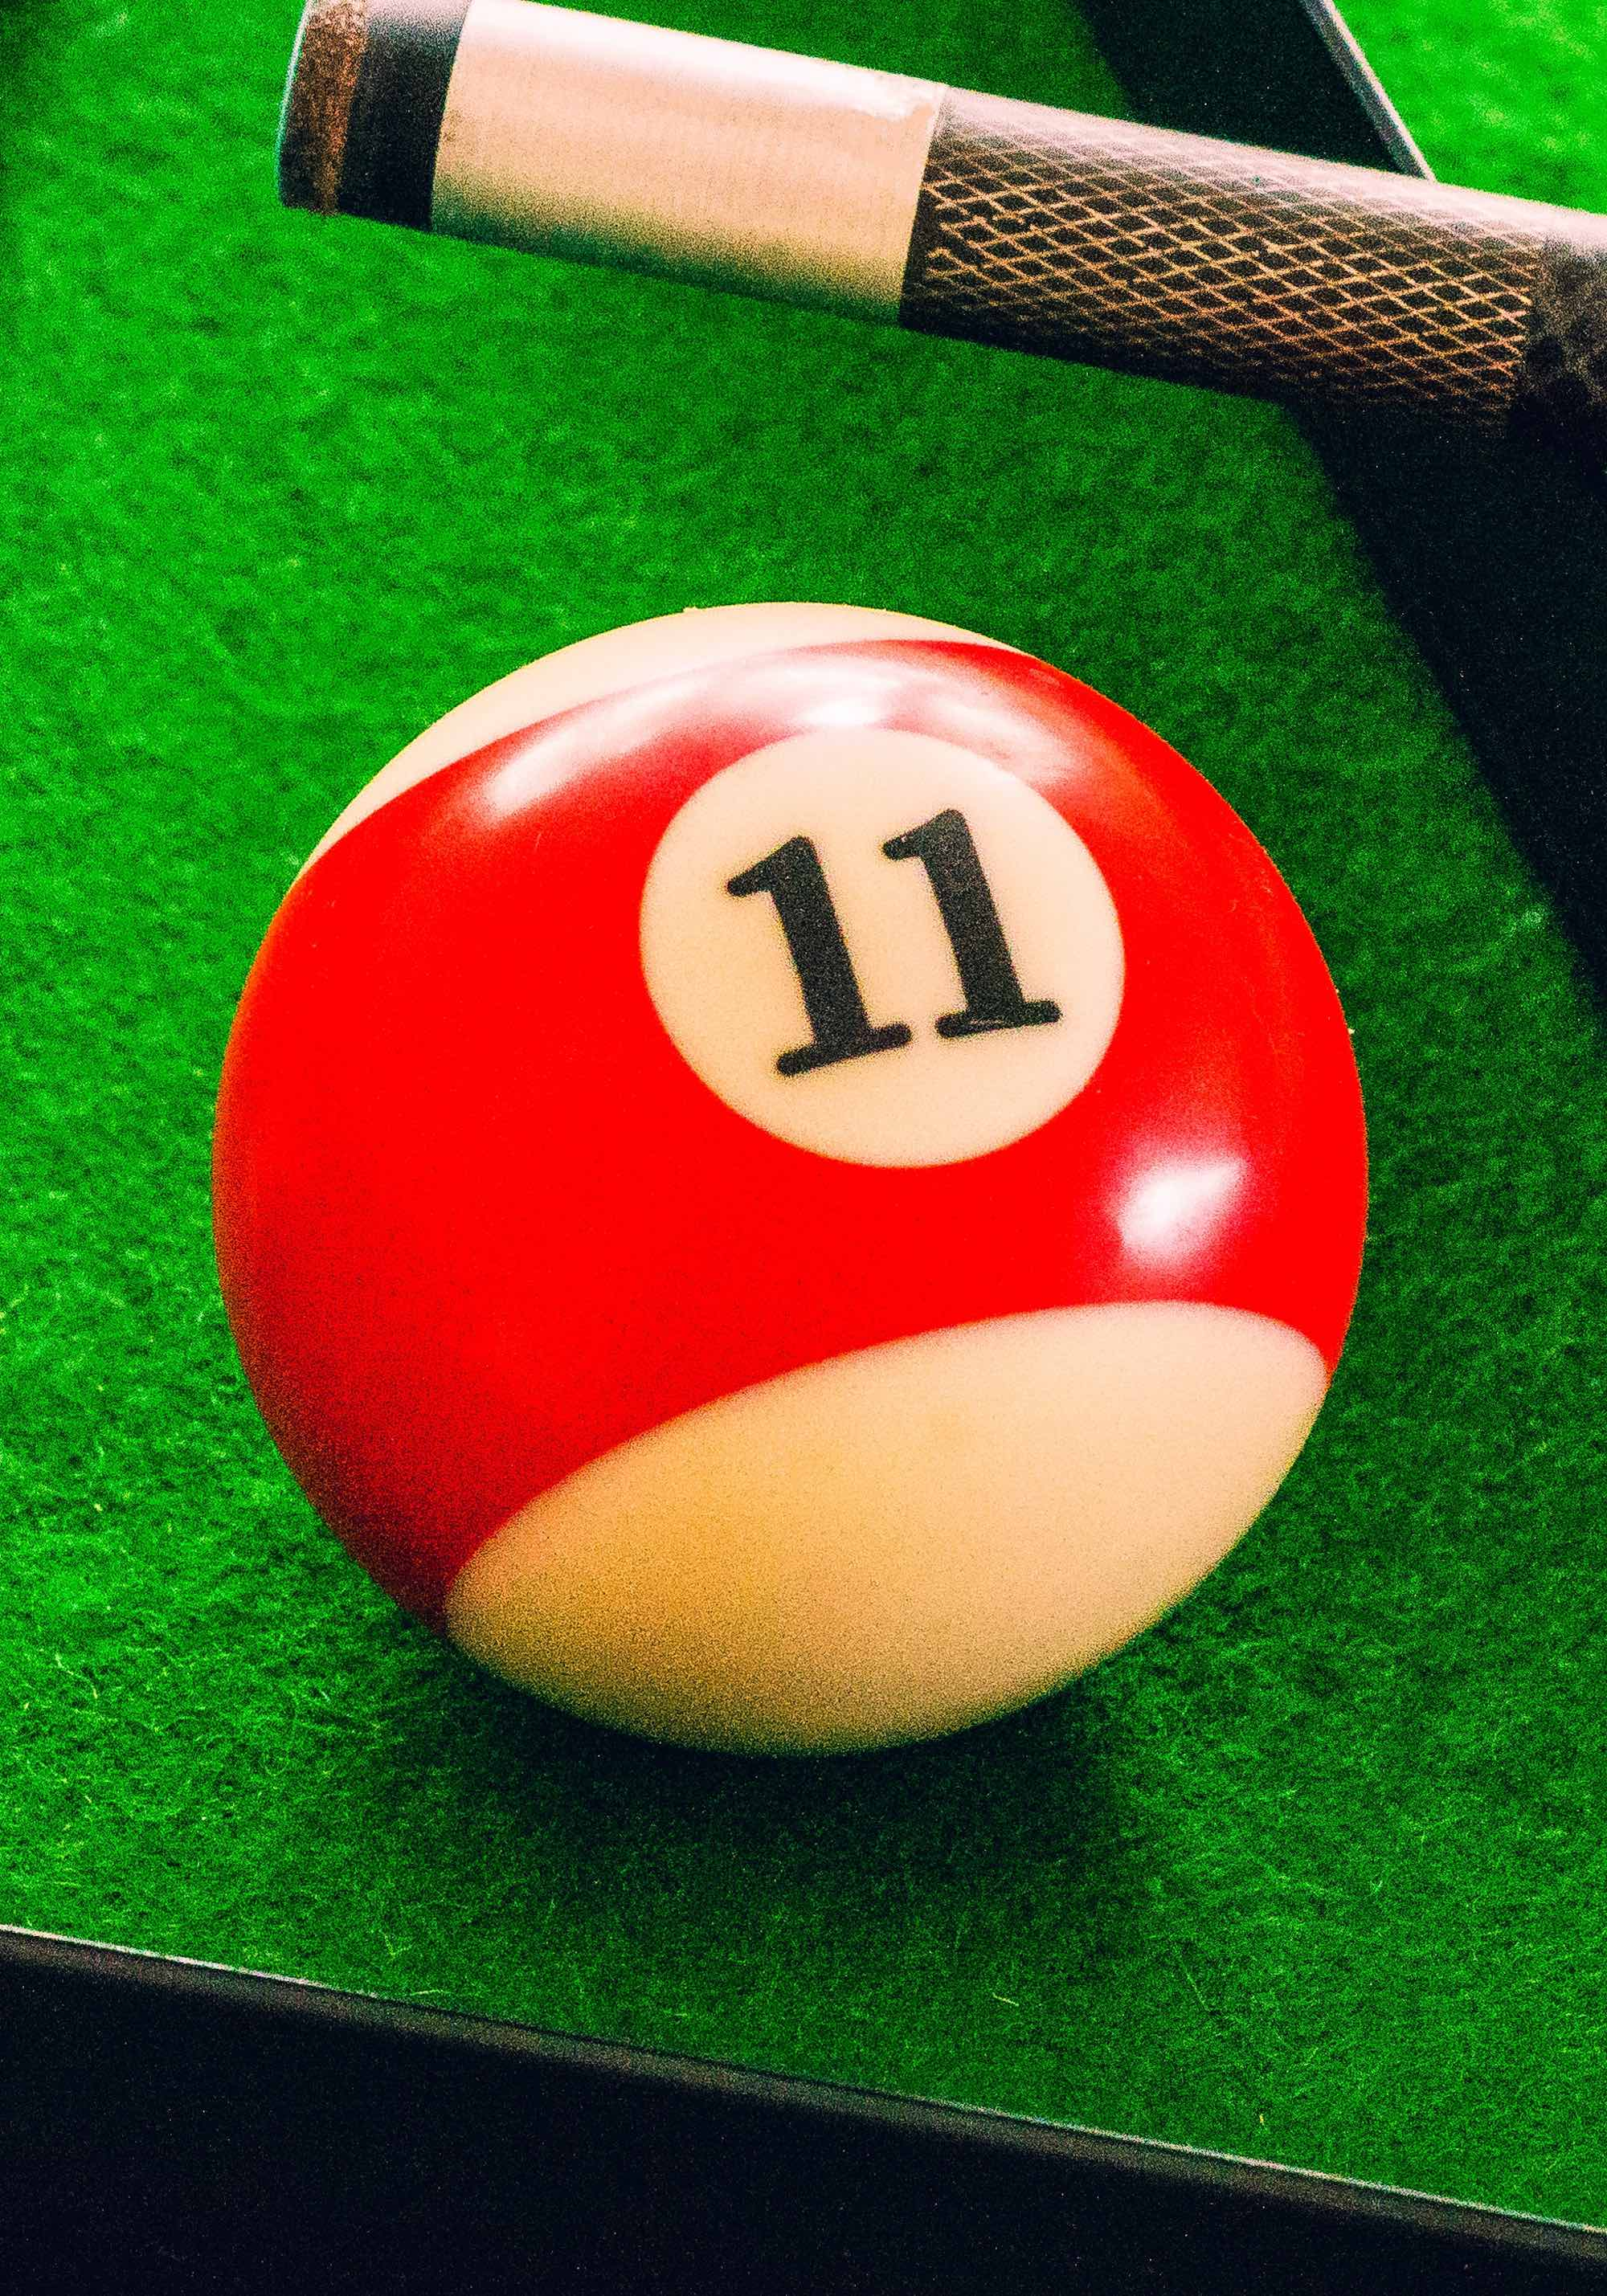 red striped billiard ball with the number 11